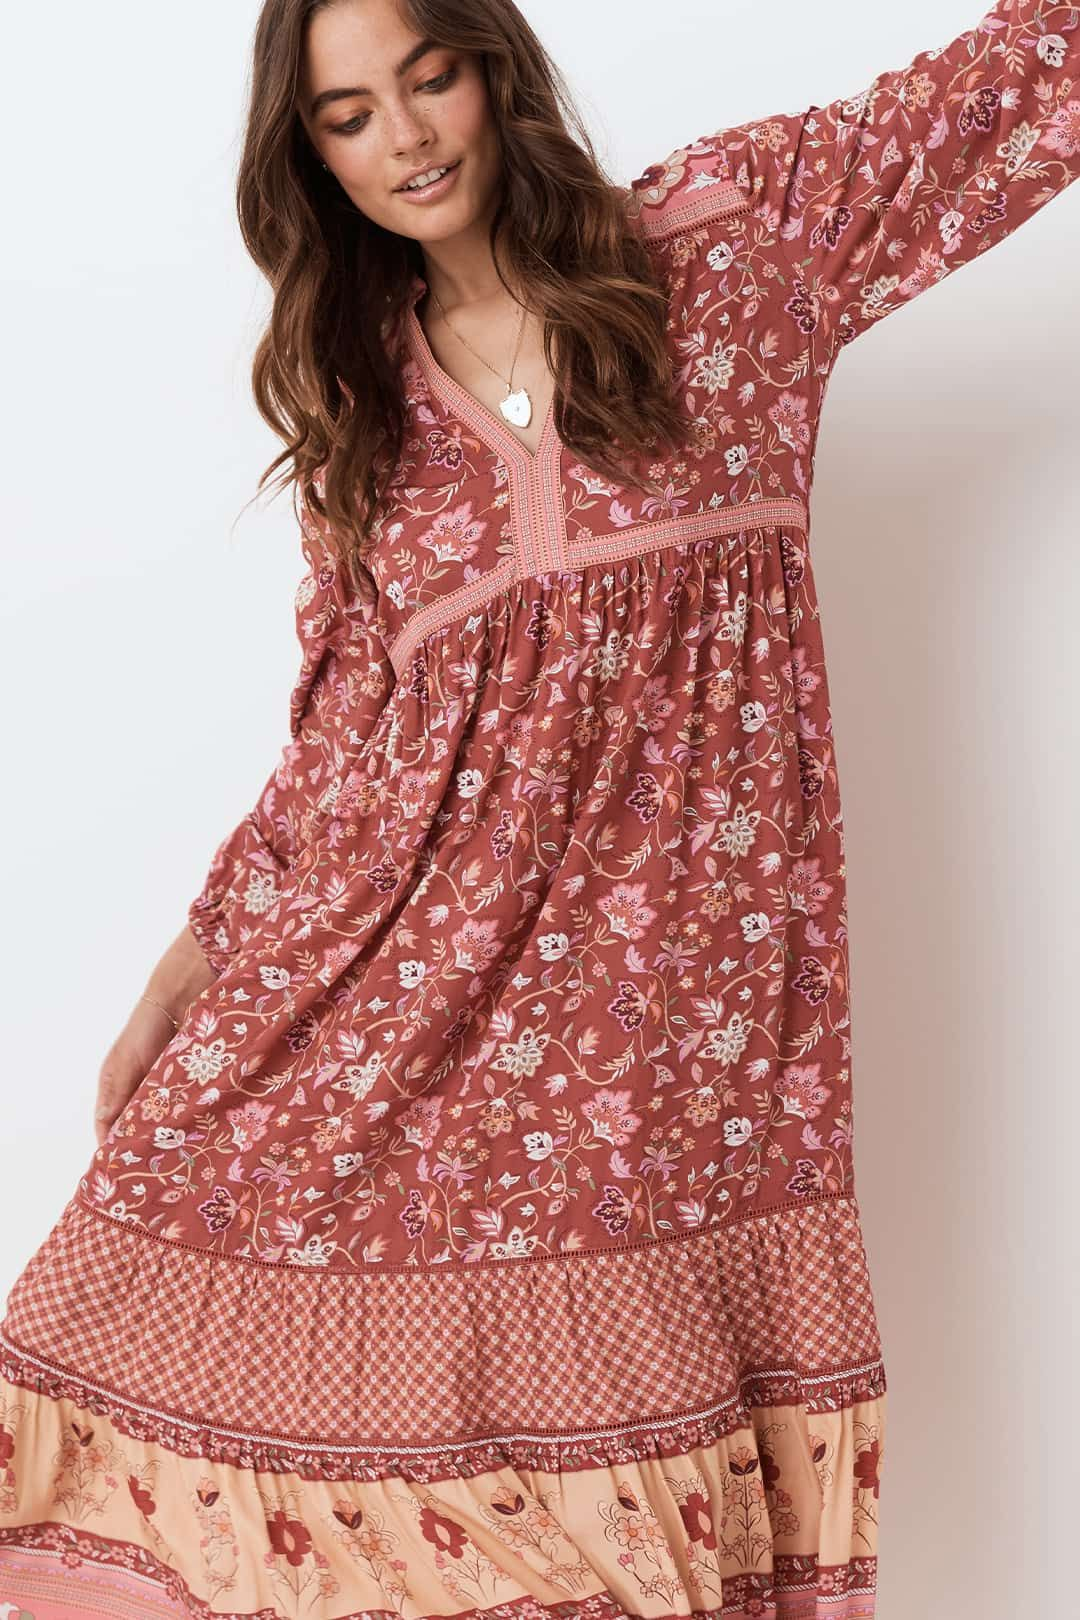 Spell Portobello Road Gown Relaxed Fit